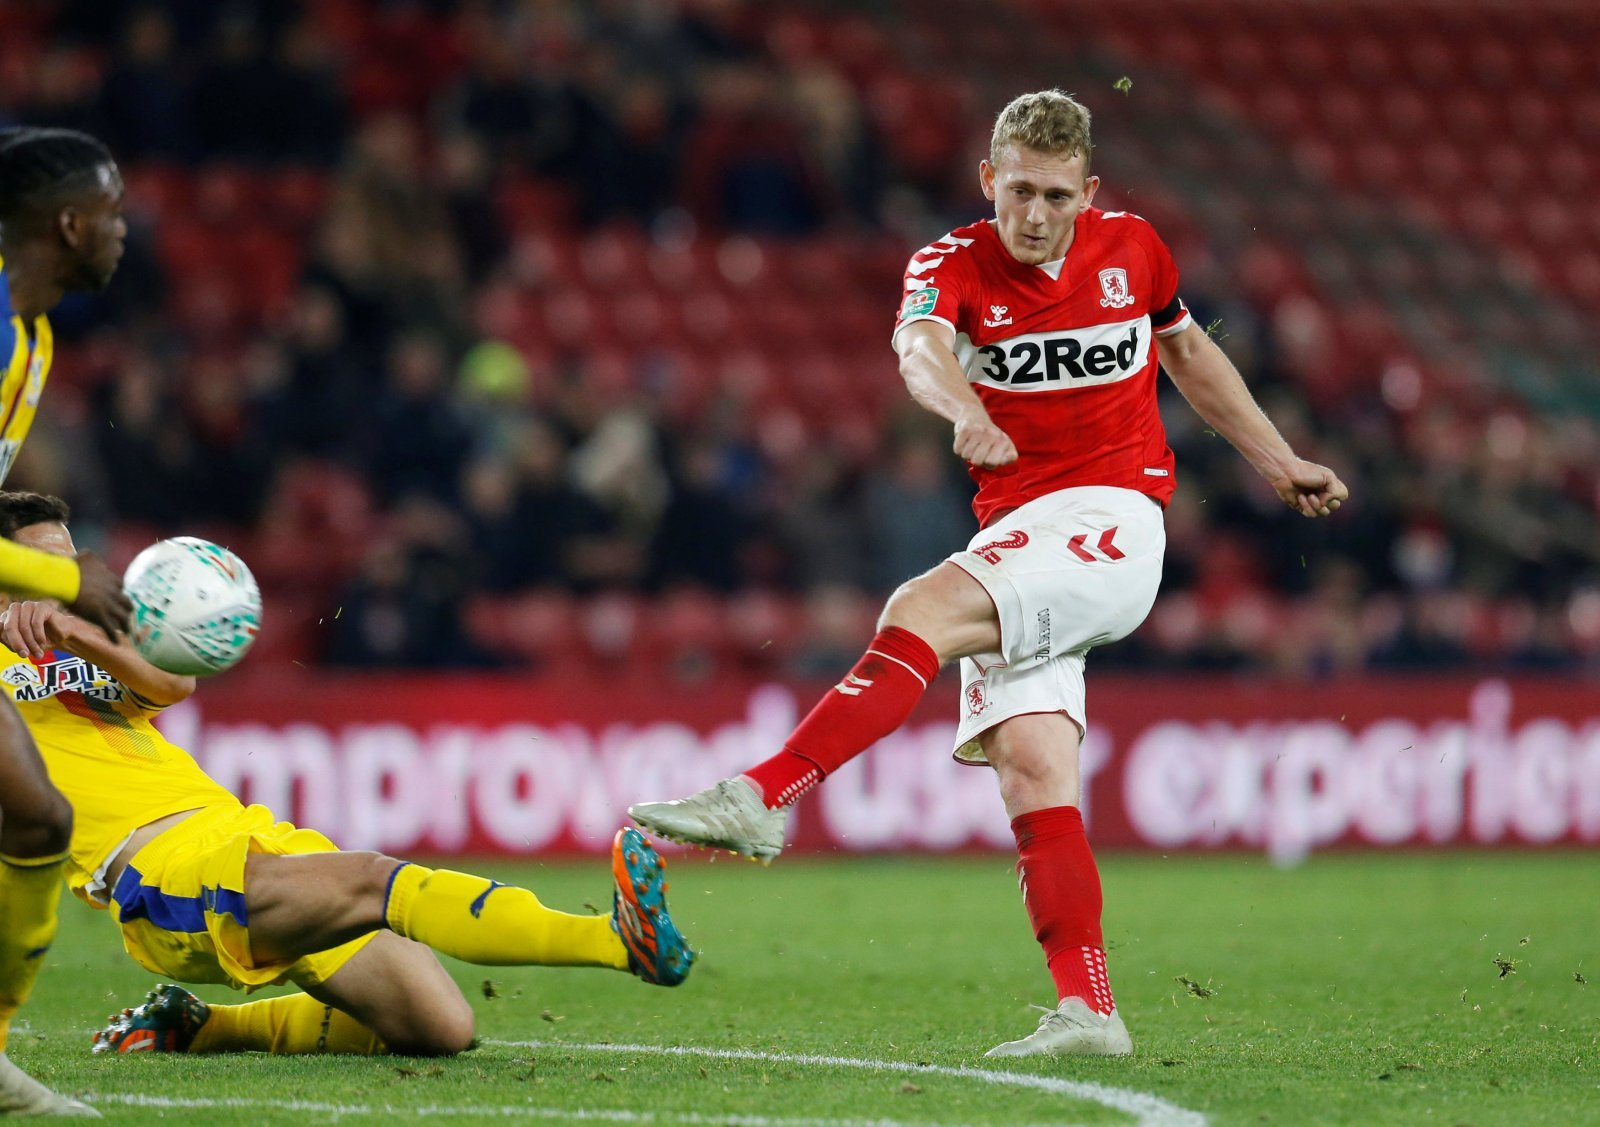 Middlesbrough: George Saville frustrated at lack of starts this season